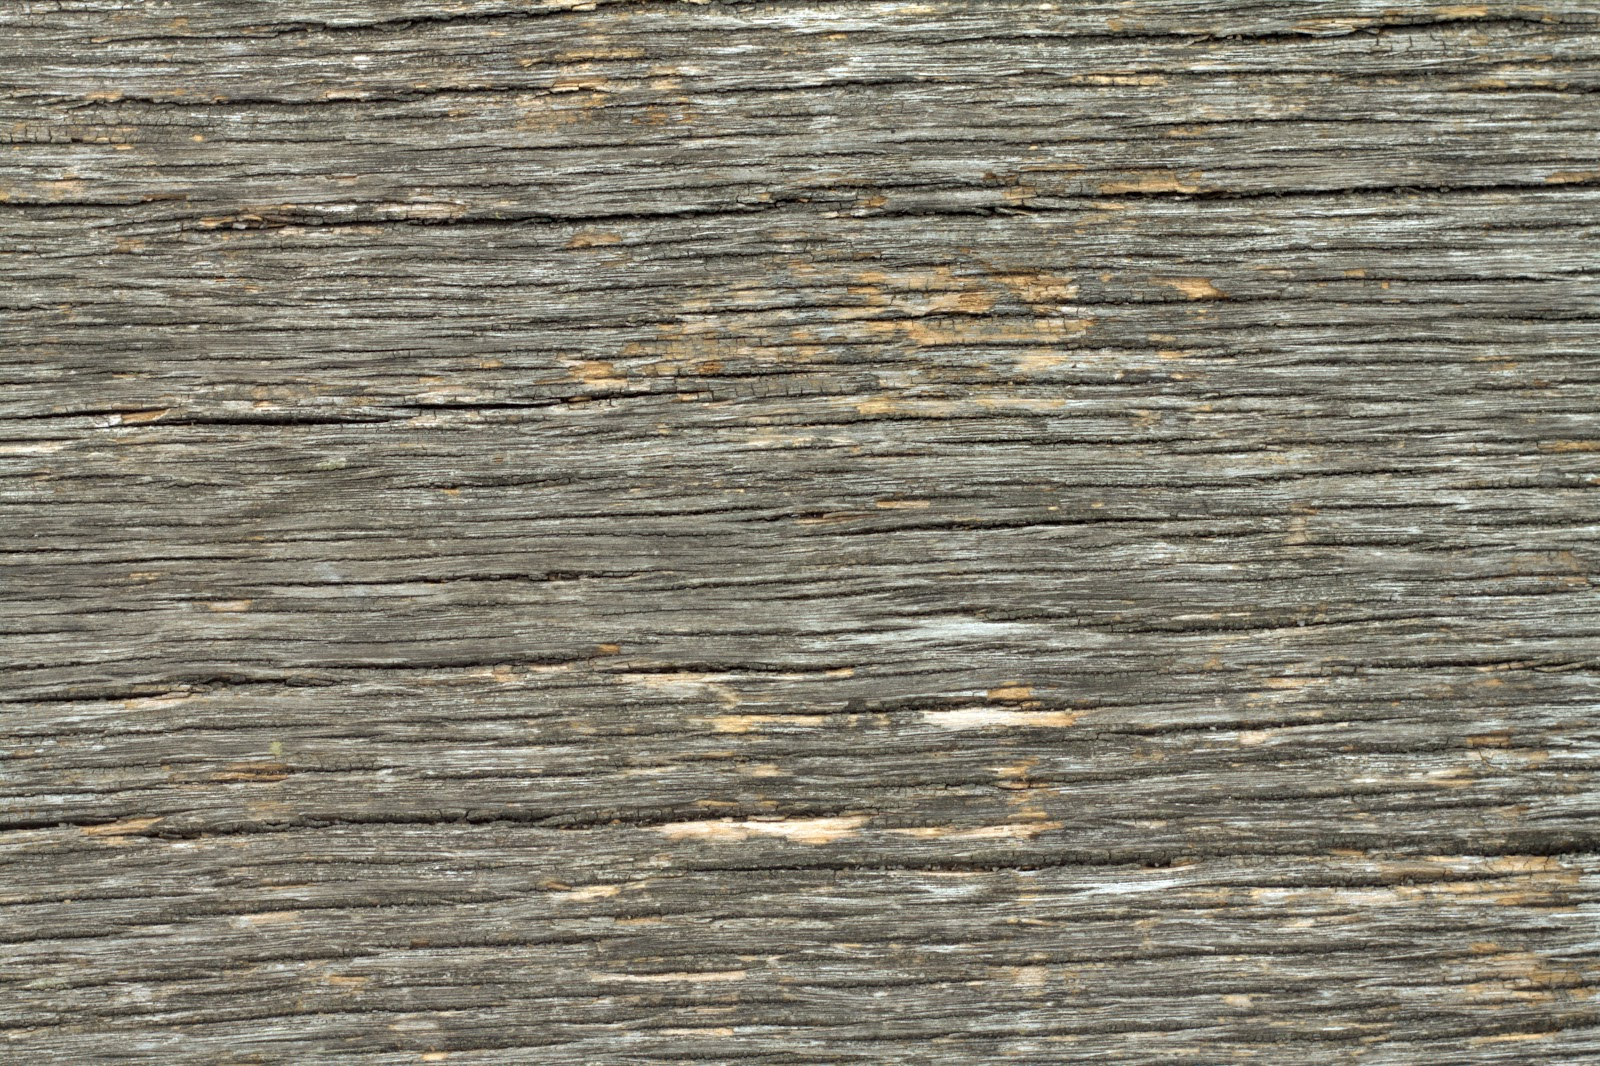 (Wood 21) dry cracked plank tree bark texture